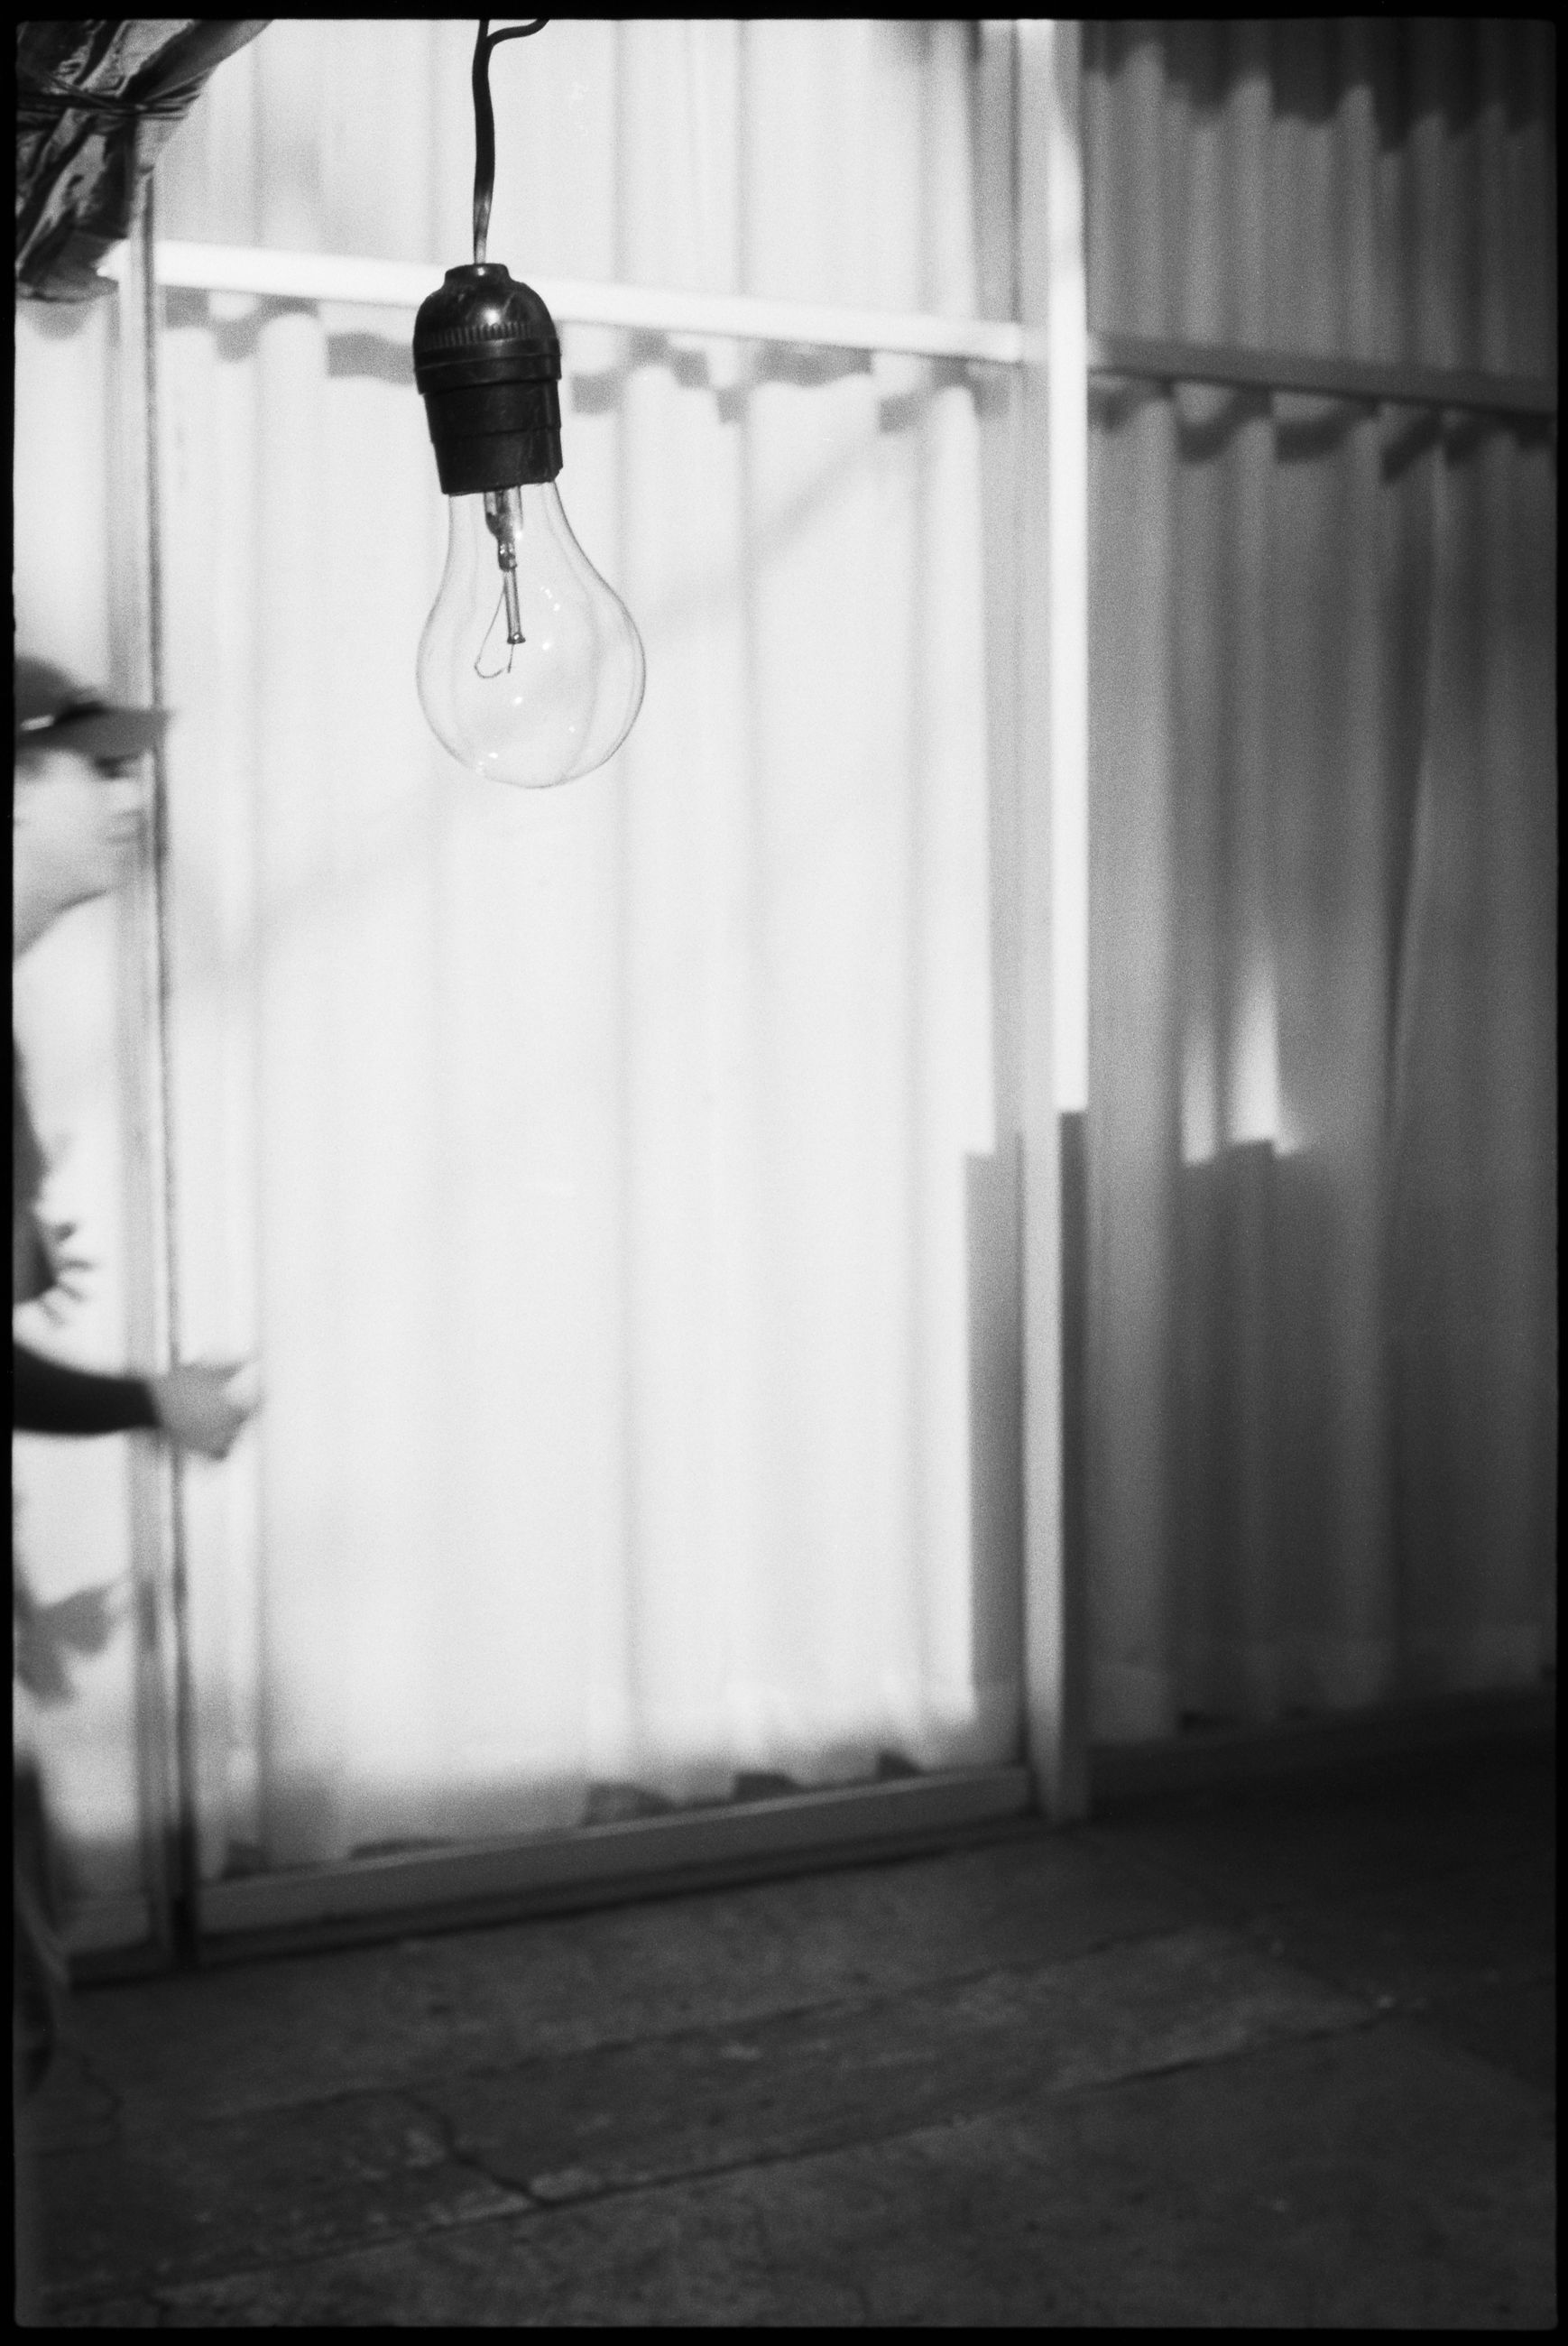 indoors, lighting equipment, hanging, focus on foreground, light bulb, no people, electricity, domestic room, close-up, illuminated, architecture, home interior, built structure, day, glass - material, absence, electric light, chandelier, selective focus, ceiling, electric lamp, light fixture